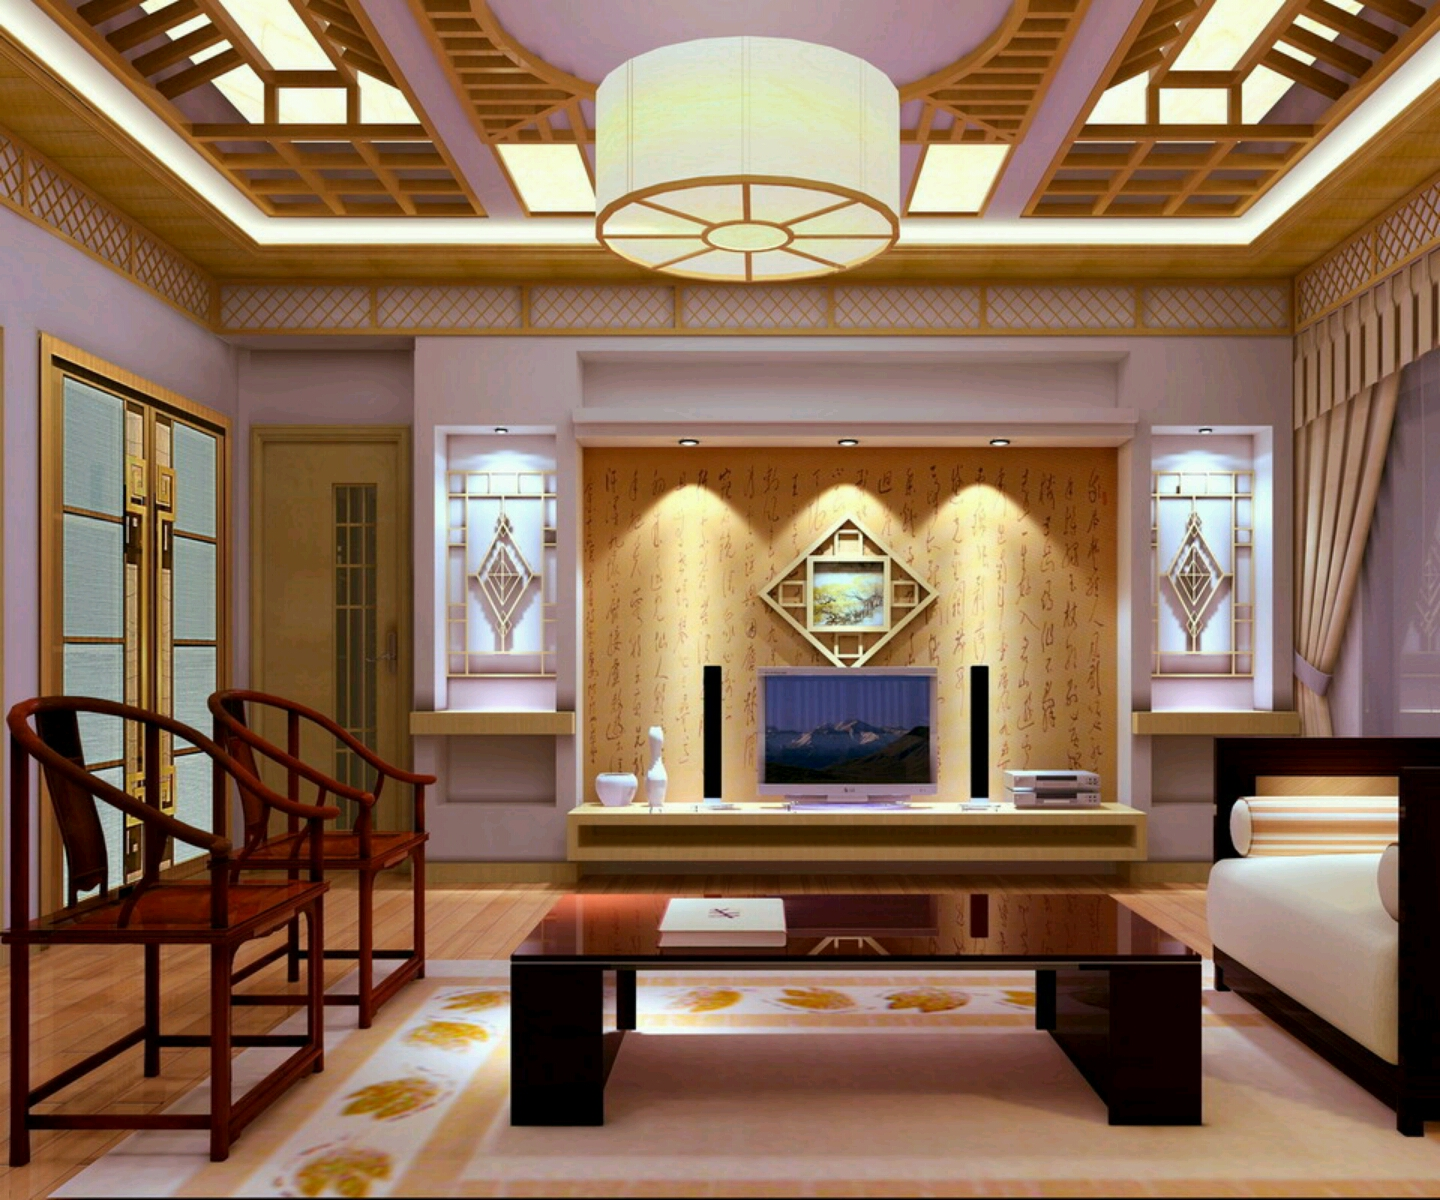 New home designs latest homes interior designs studyrooms for New design home decoration